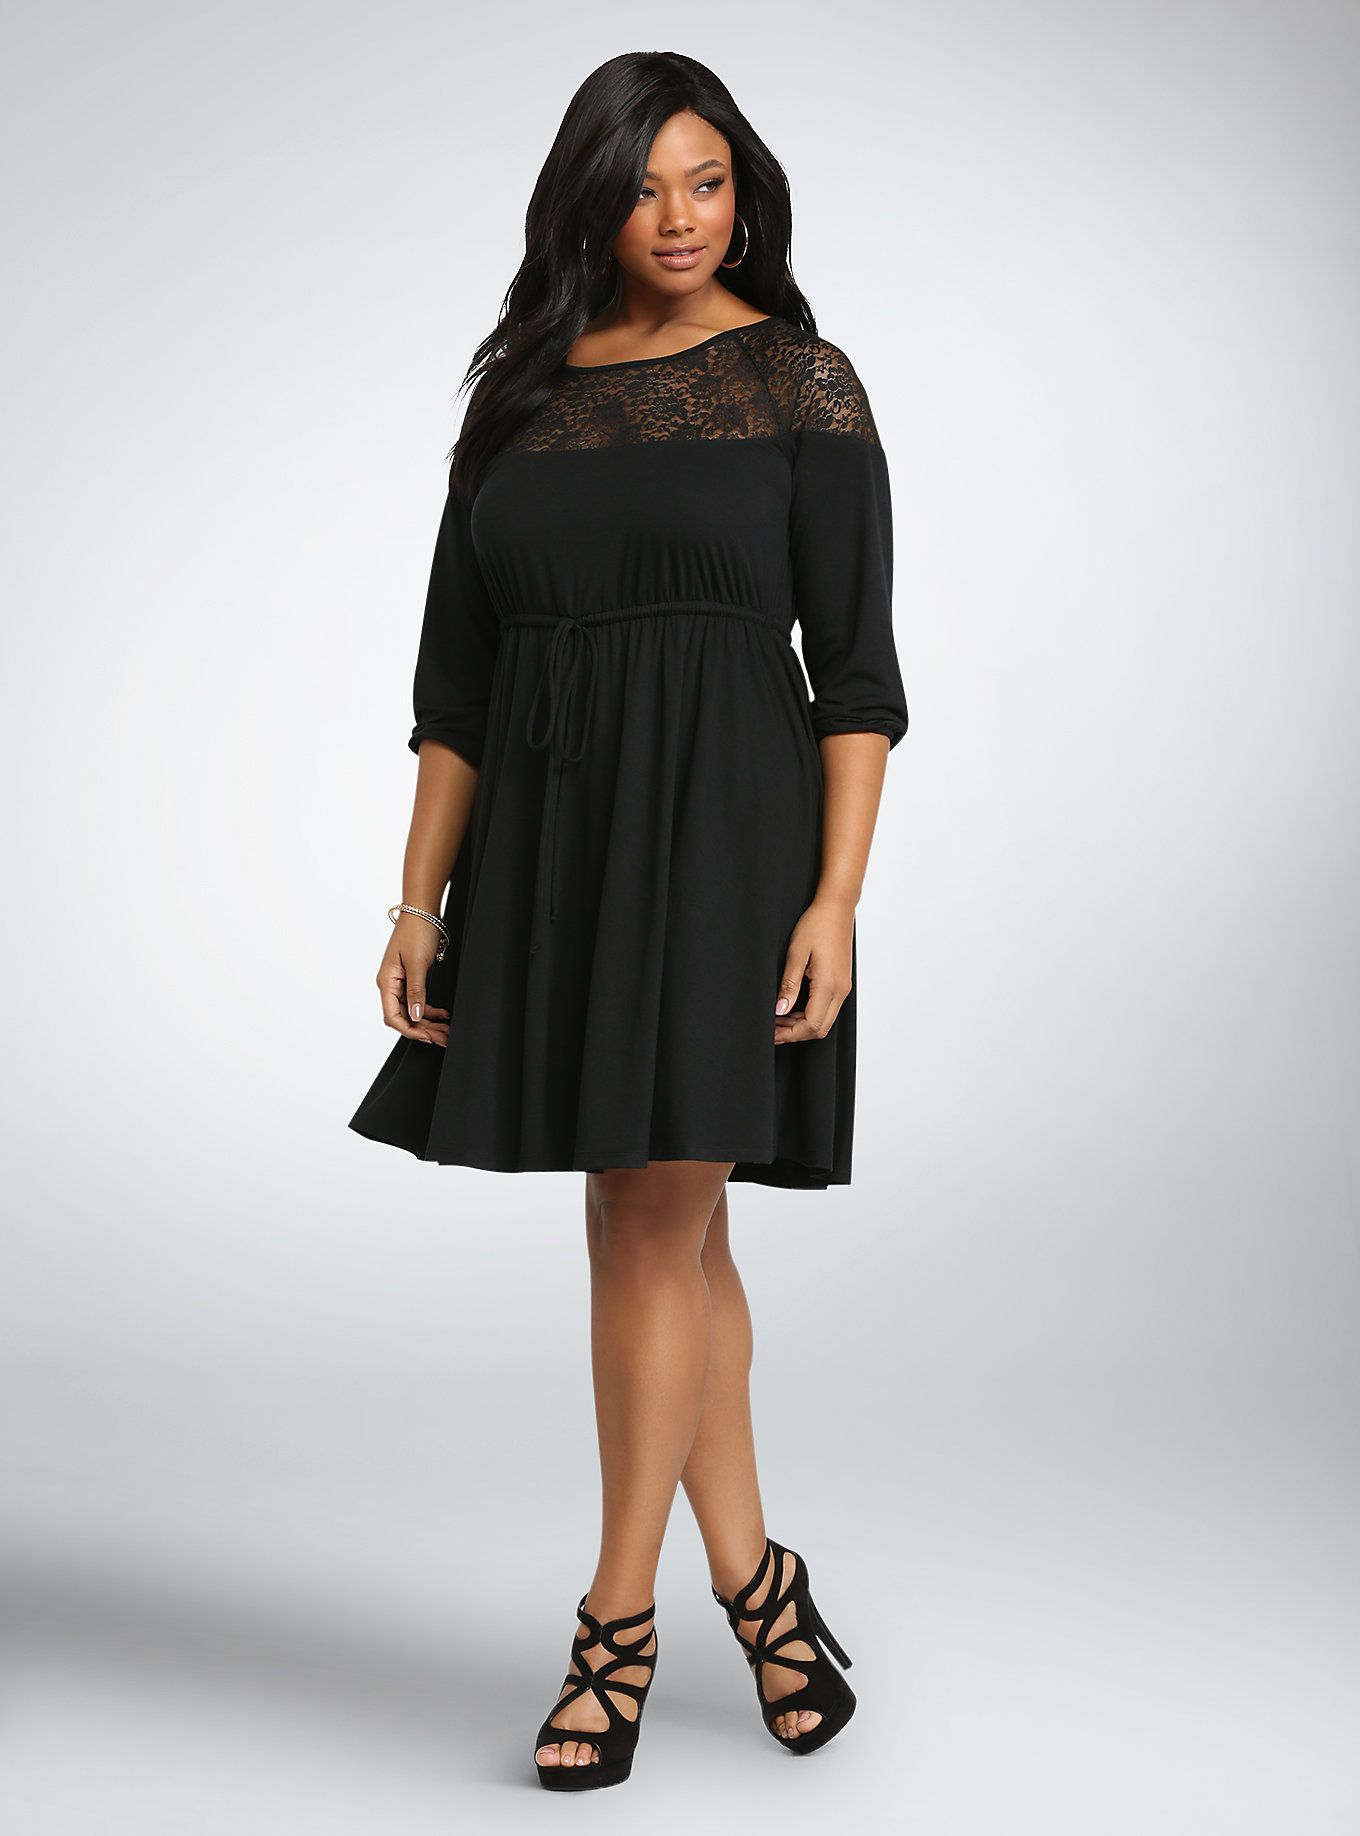 Lace Inset Tie Waist Skater Dress | Torrid, Lace inset and Clothes